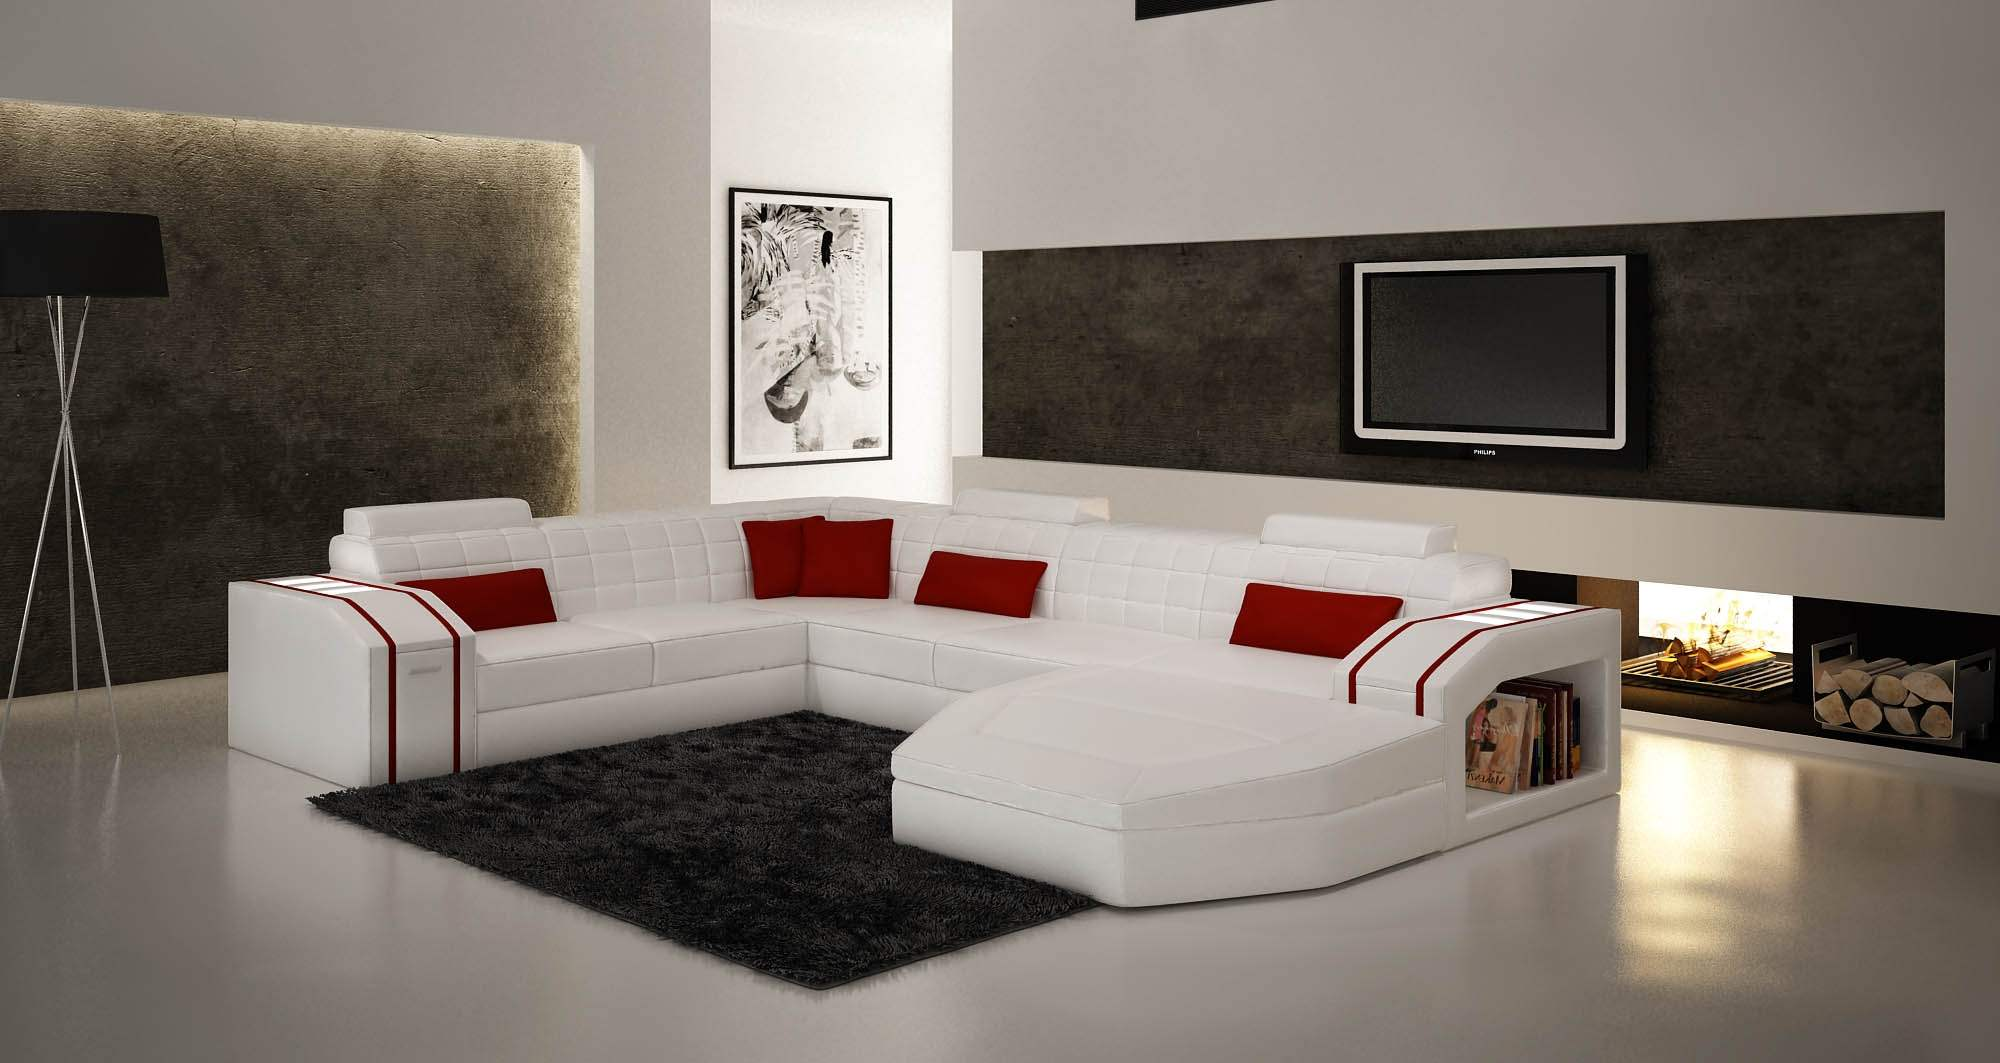 decor salon blanc et rouge avec des id es int ressantes pour la conception de la. Black Bedroom Furniture Sets. Home Design Ideas